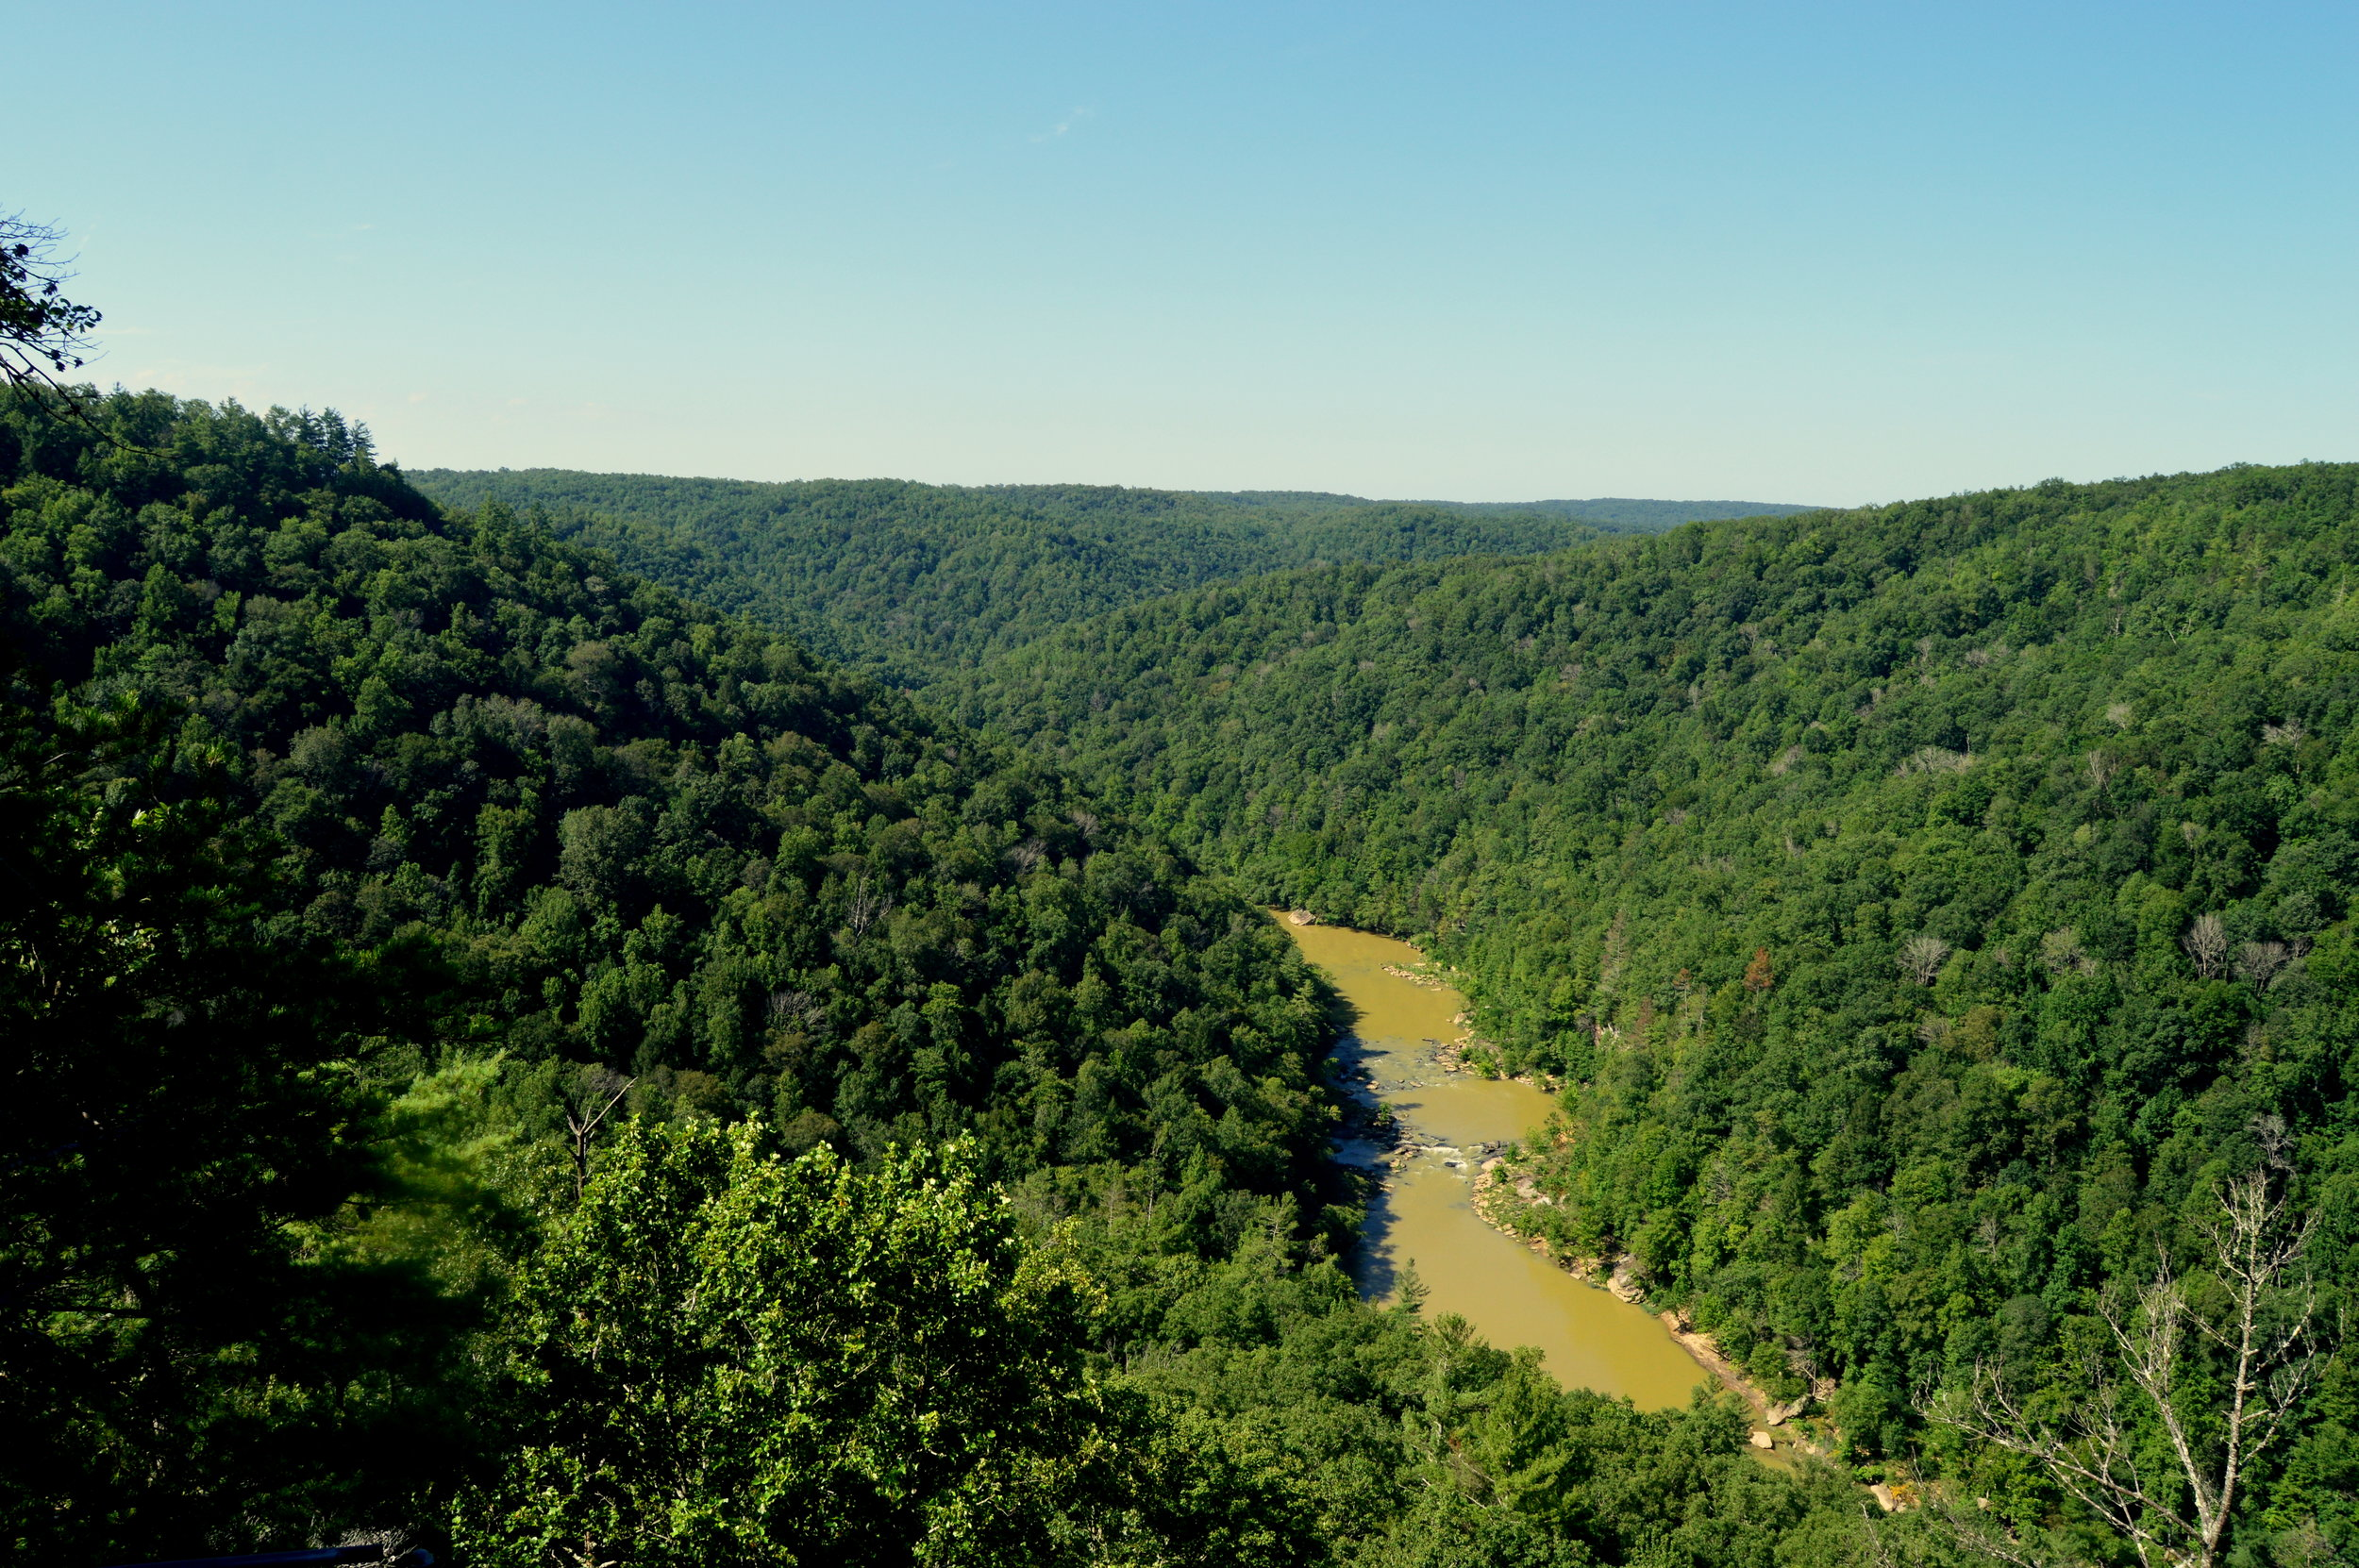 The East Rim Overlook is just a short drive off the main road through Big South Fork National River and Recreation Area. A paved trail takes you to the spot where you see a sprawling river gorge hundreds of feet below you.